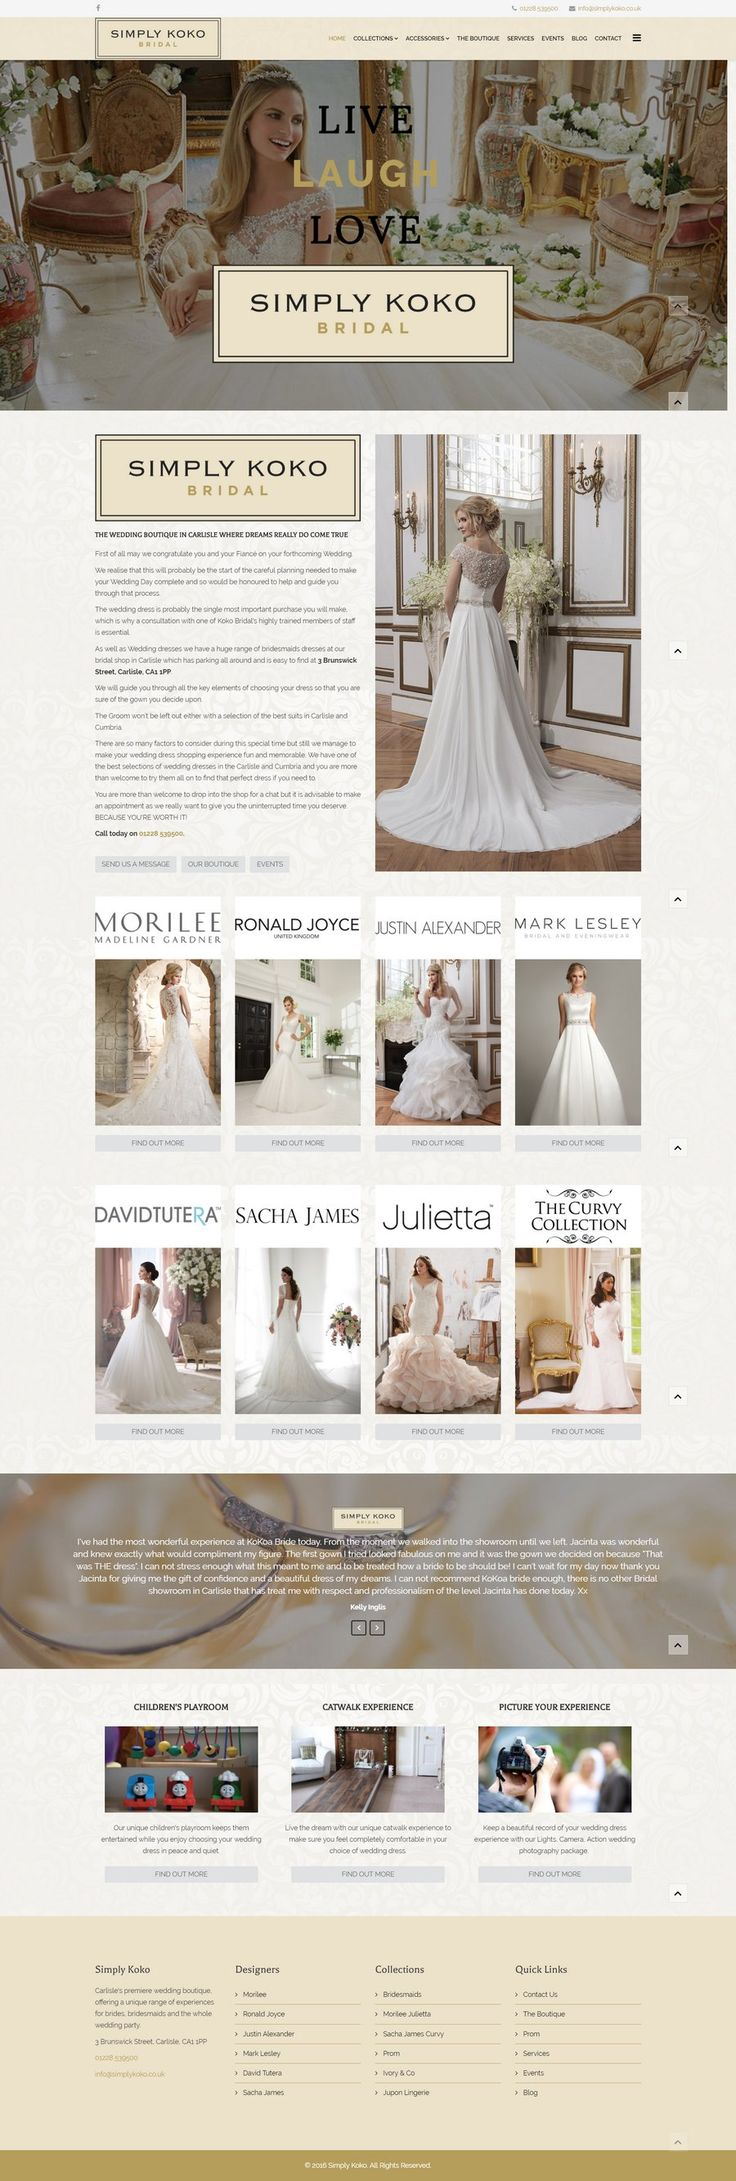 Showcasing the range of wedding and bridal products available from Simply Koko Bridal in Carlisle, this website is also ready to go with e-commerce in the future.